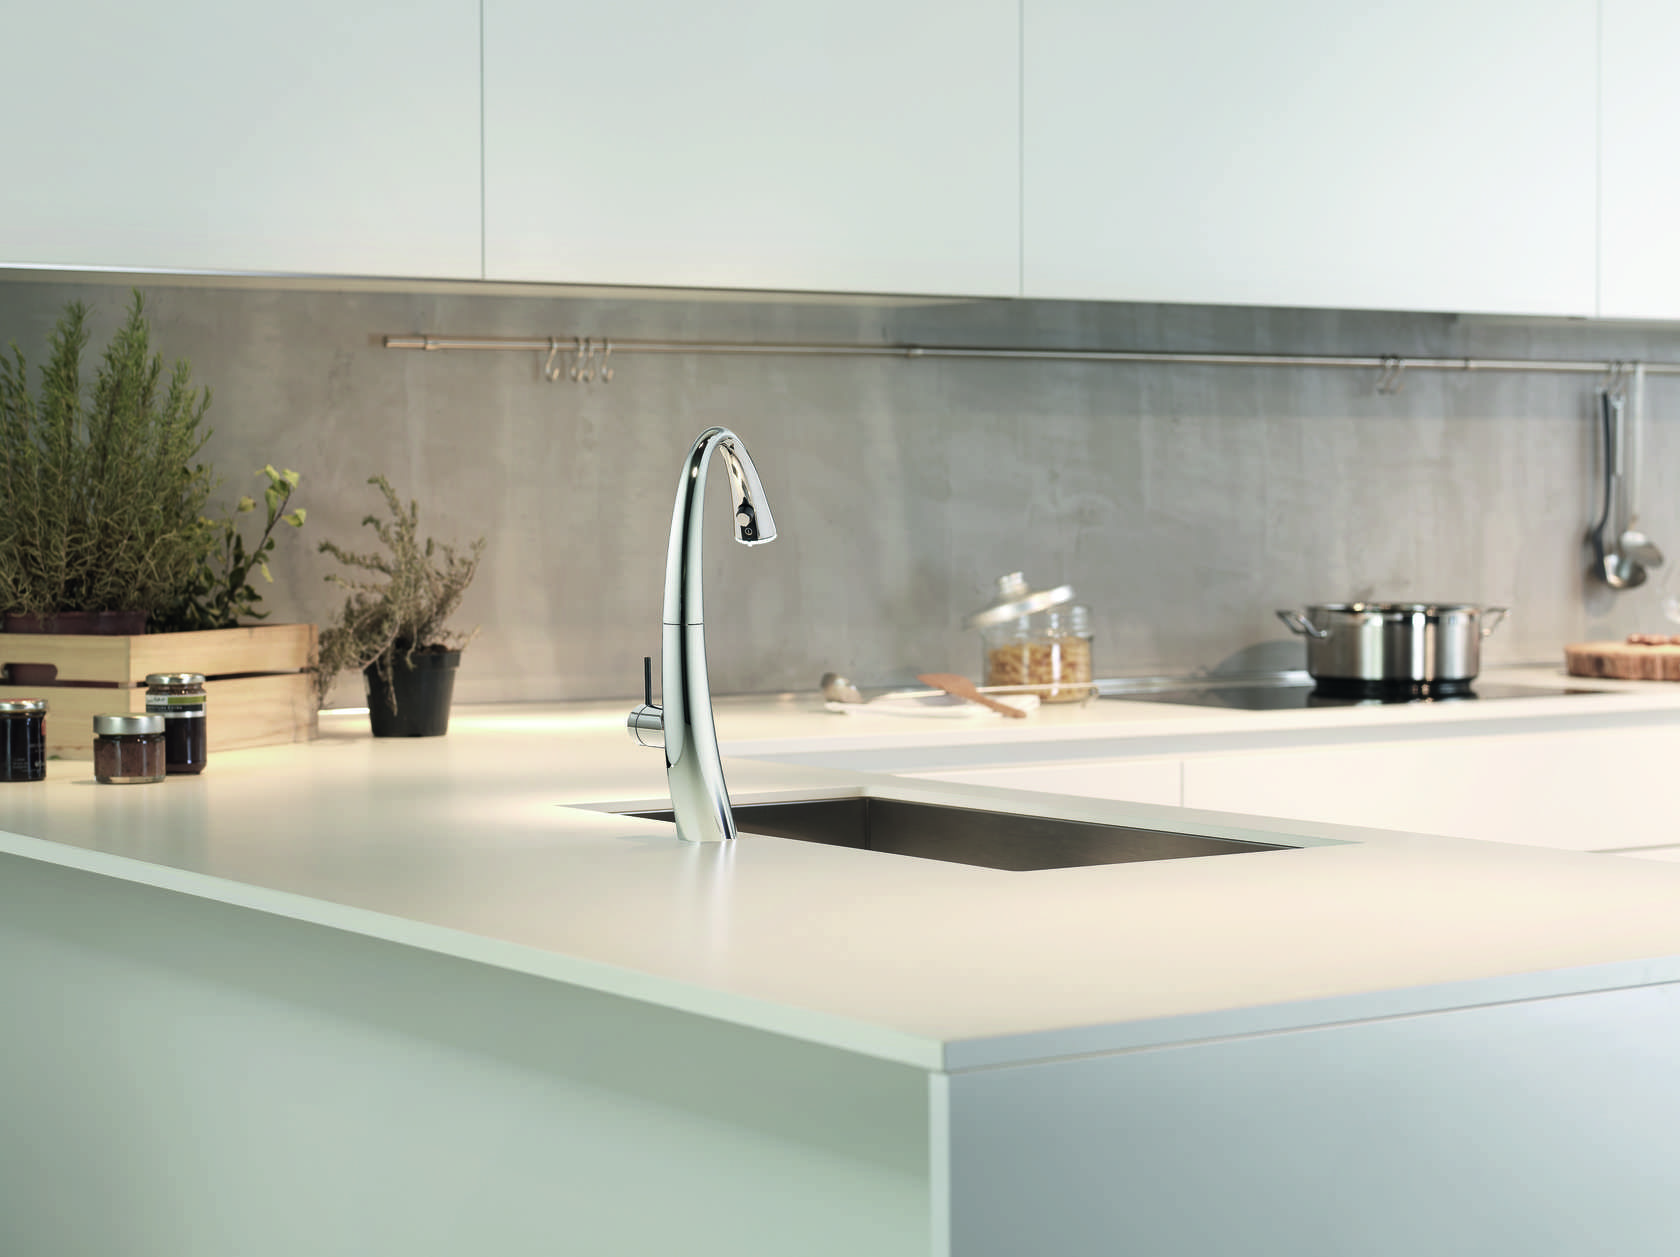 Kwc Zoe Touch Light Pro Is A Faucet Controlled Using Smart